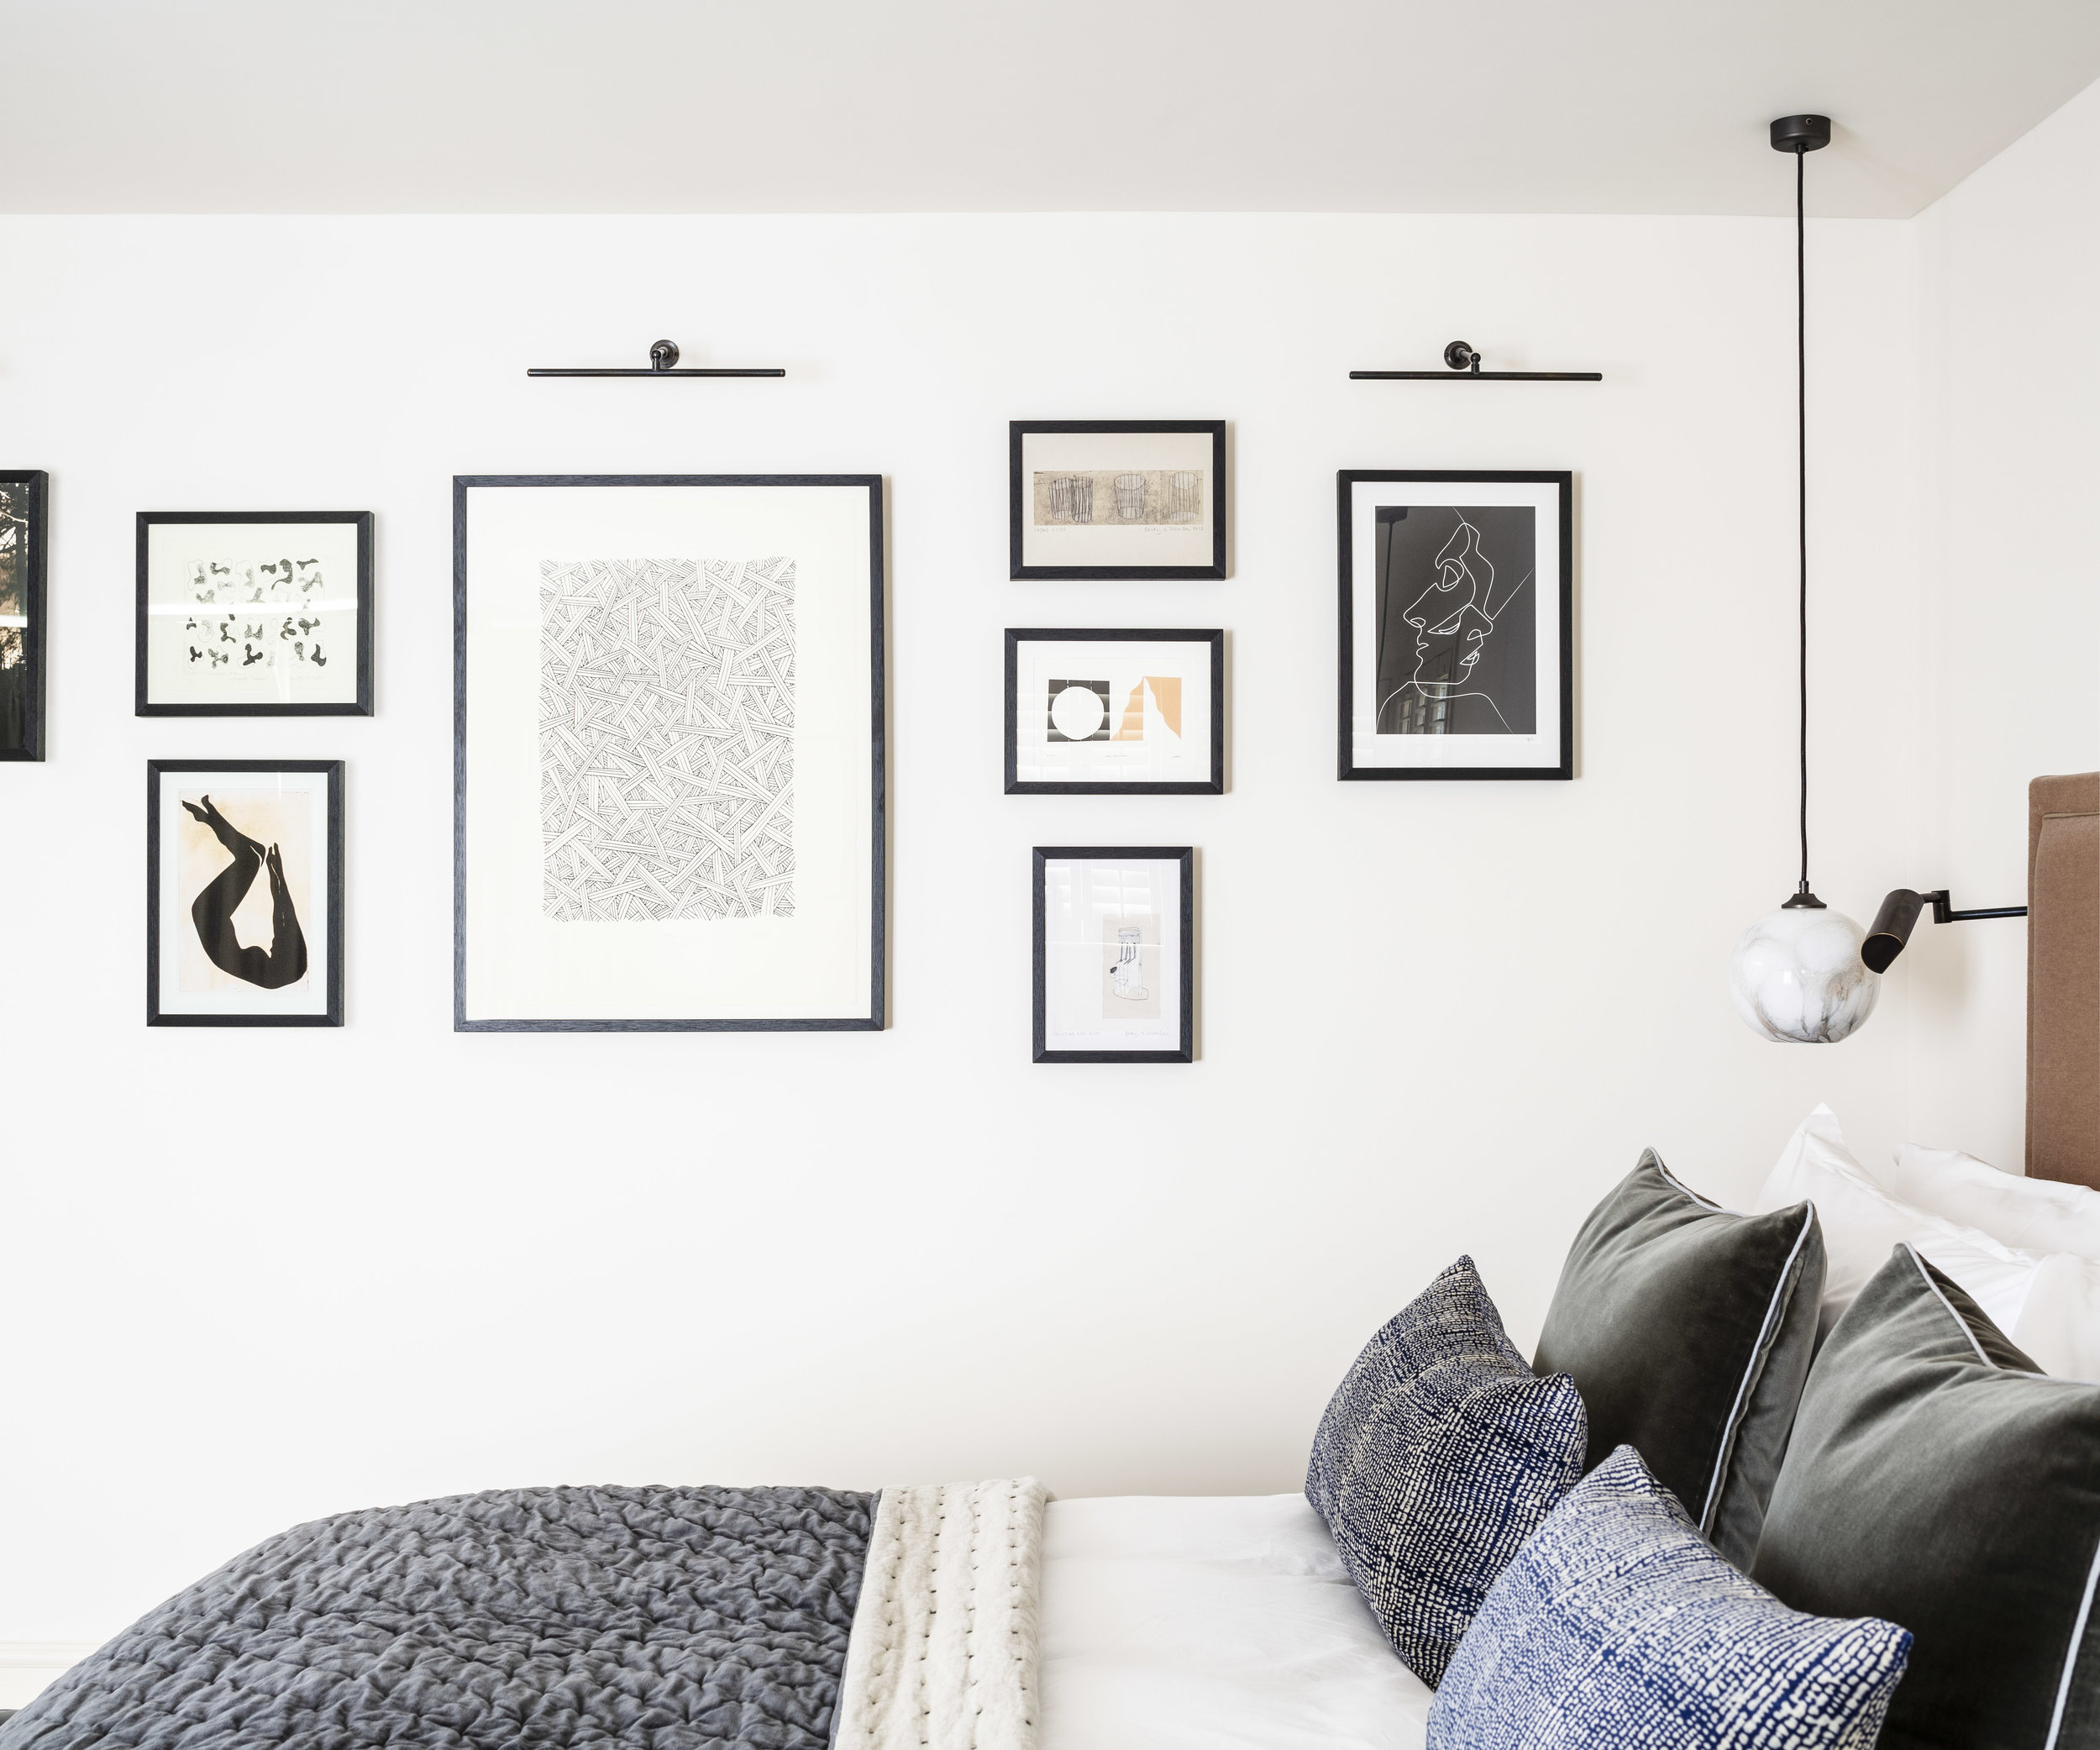 Private Residence | Hampstead   Bedroom Cluster Wall - Works on Paper      Interior Design: Article Design Studio